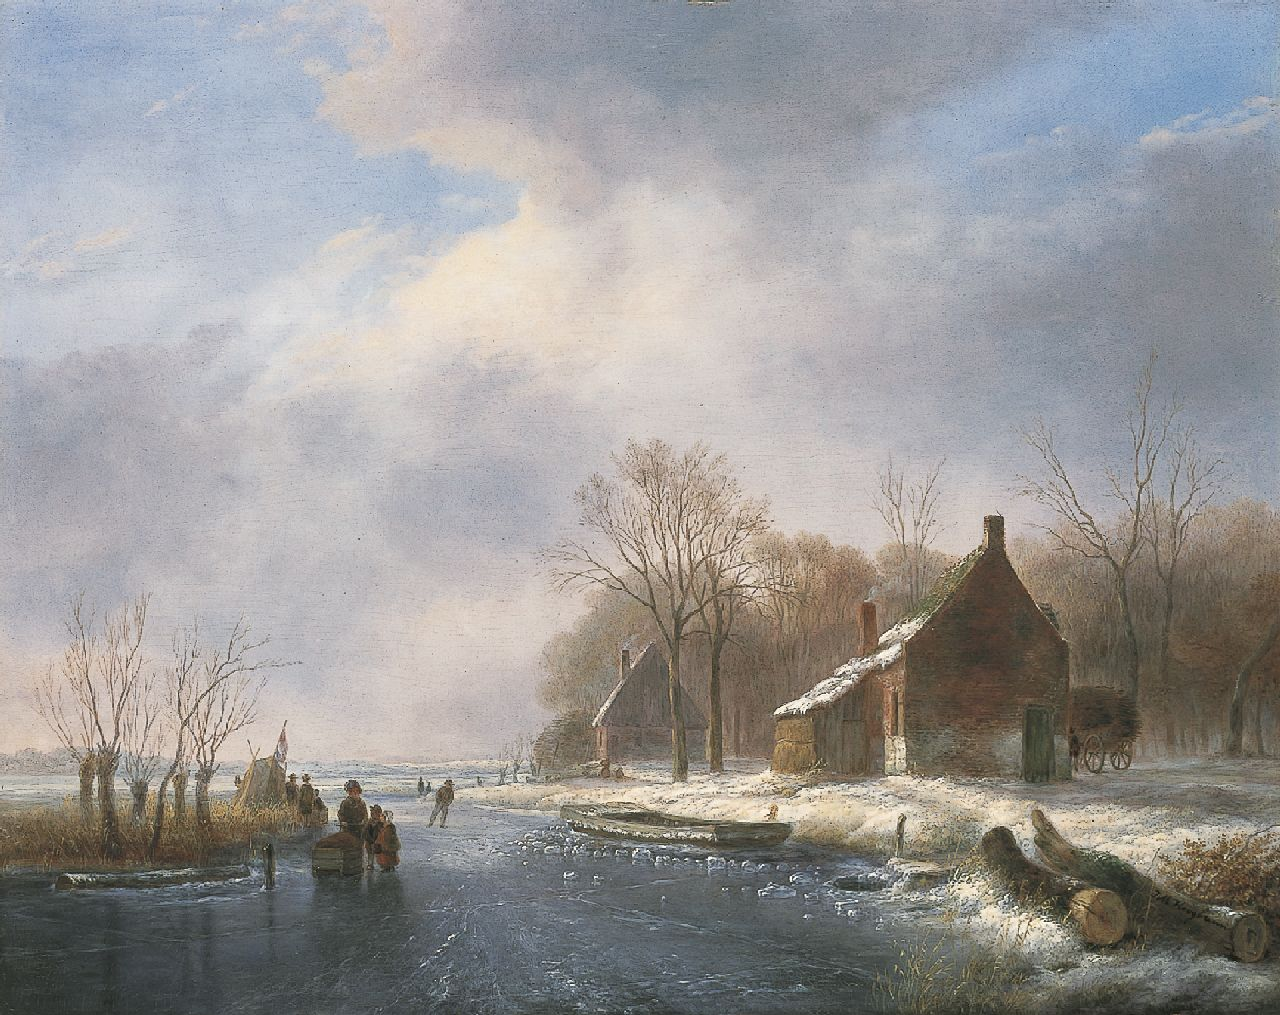 Johannes Matthijs Hoogbruin | A winter landscape with skaters on the ice, oil on panel, 45.1 x 57.3 cm, signed l.r.